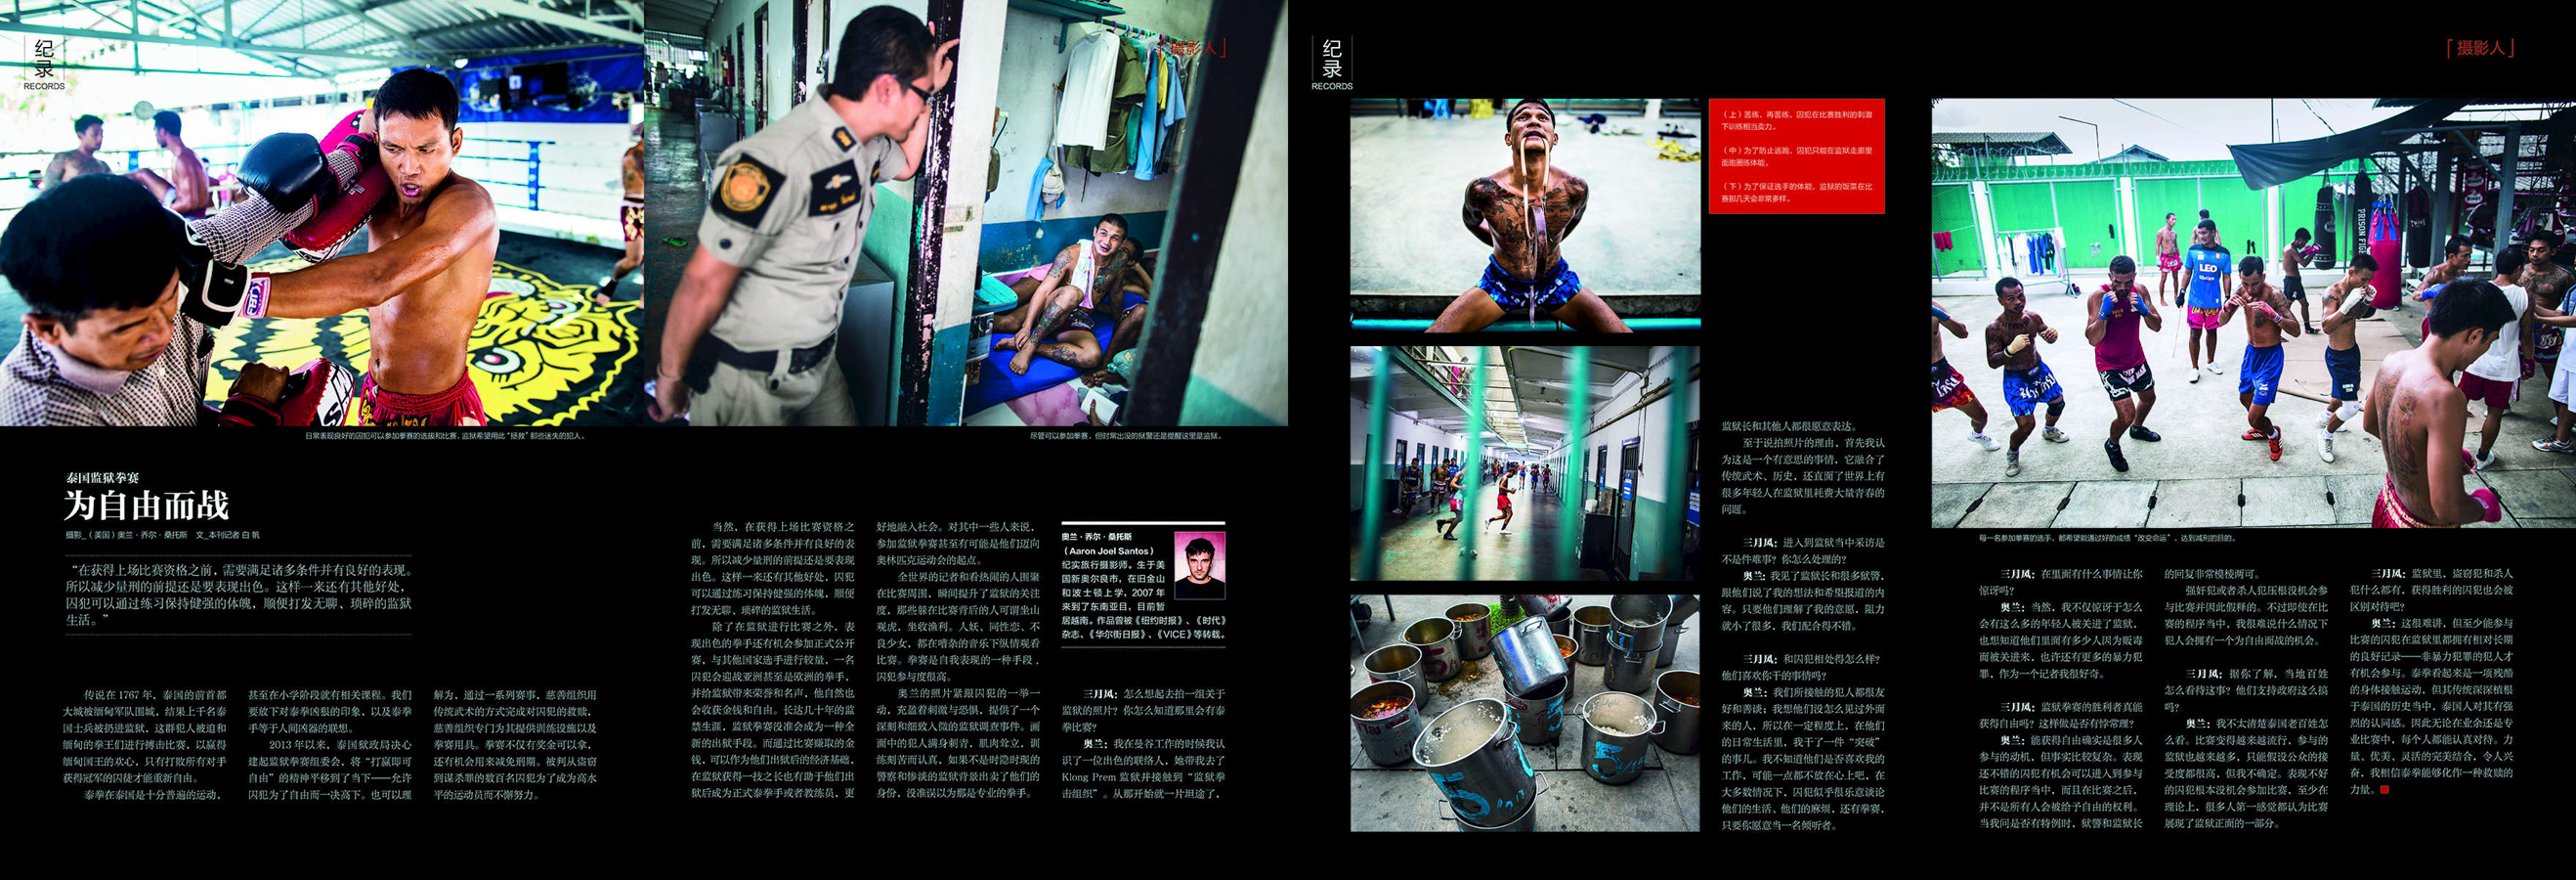 Prison-Fights-China-Tearsheet